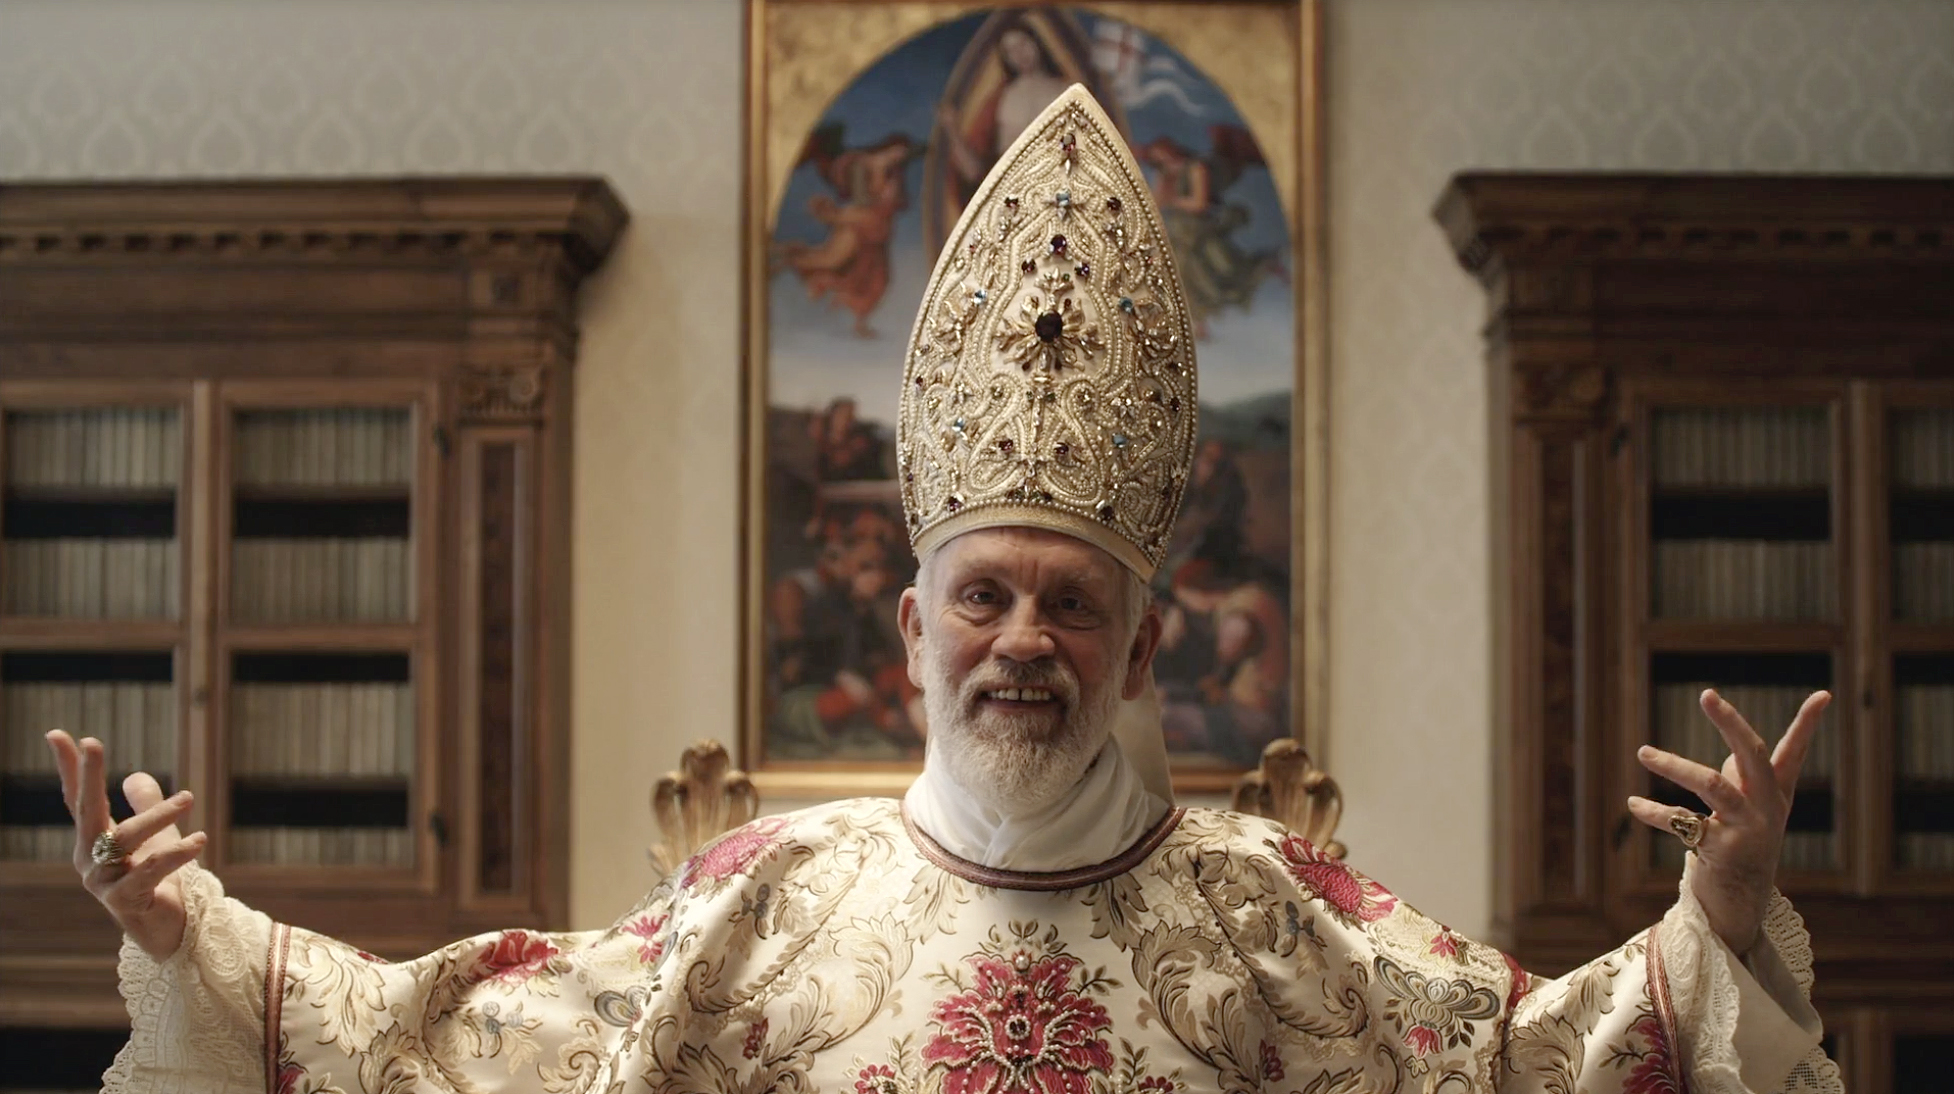 Brave ideas and blasphemy in 'The New Pope' | Angelus News